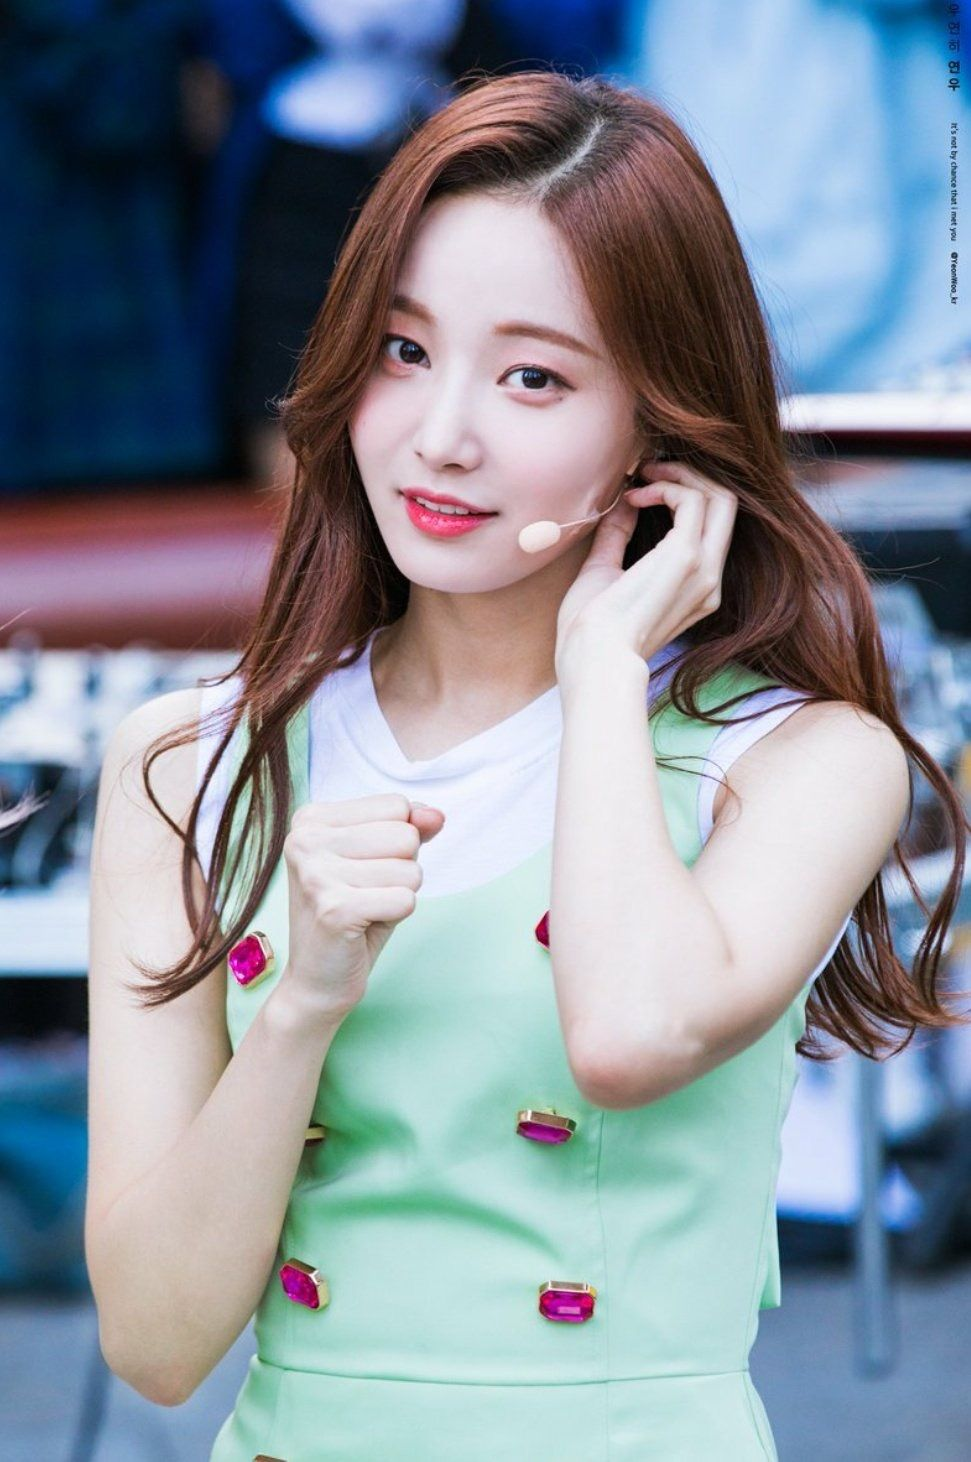 Pin by 𝕂𝕀𝕄 𝕋𝔸𝔼𝕄𝕀ℕ on MOMOLAND Yeonwoo in 2019 Cute